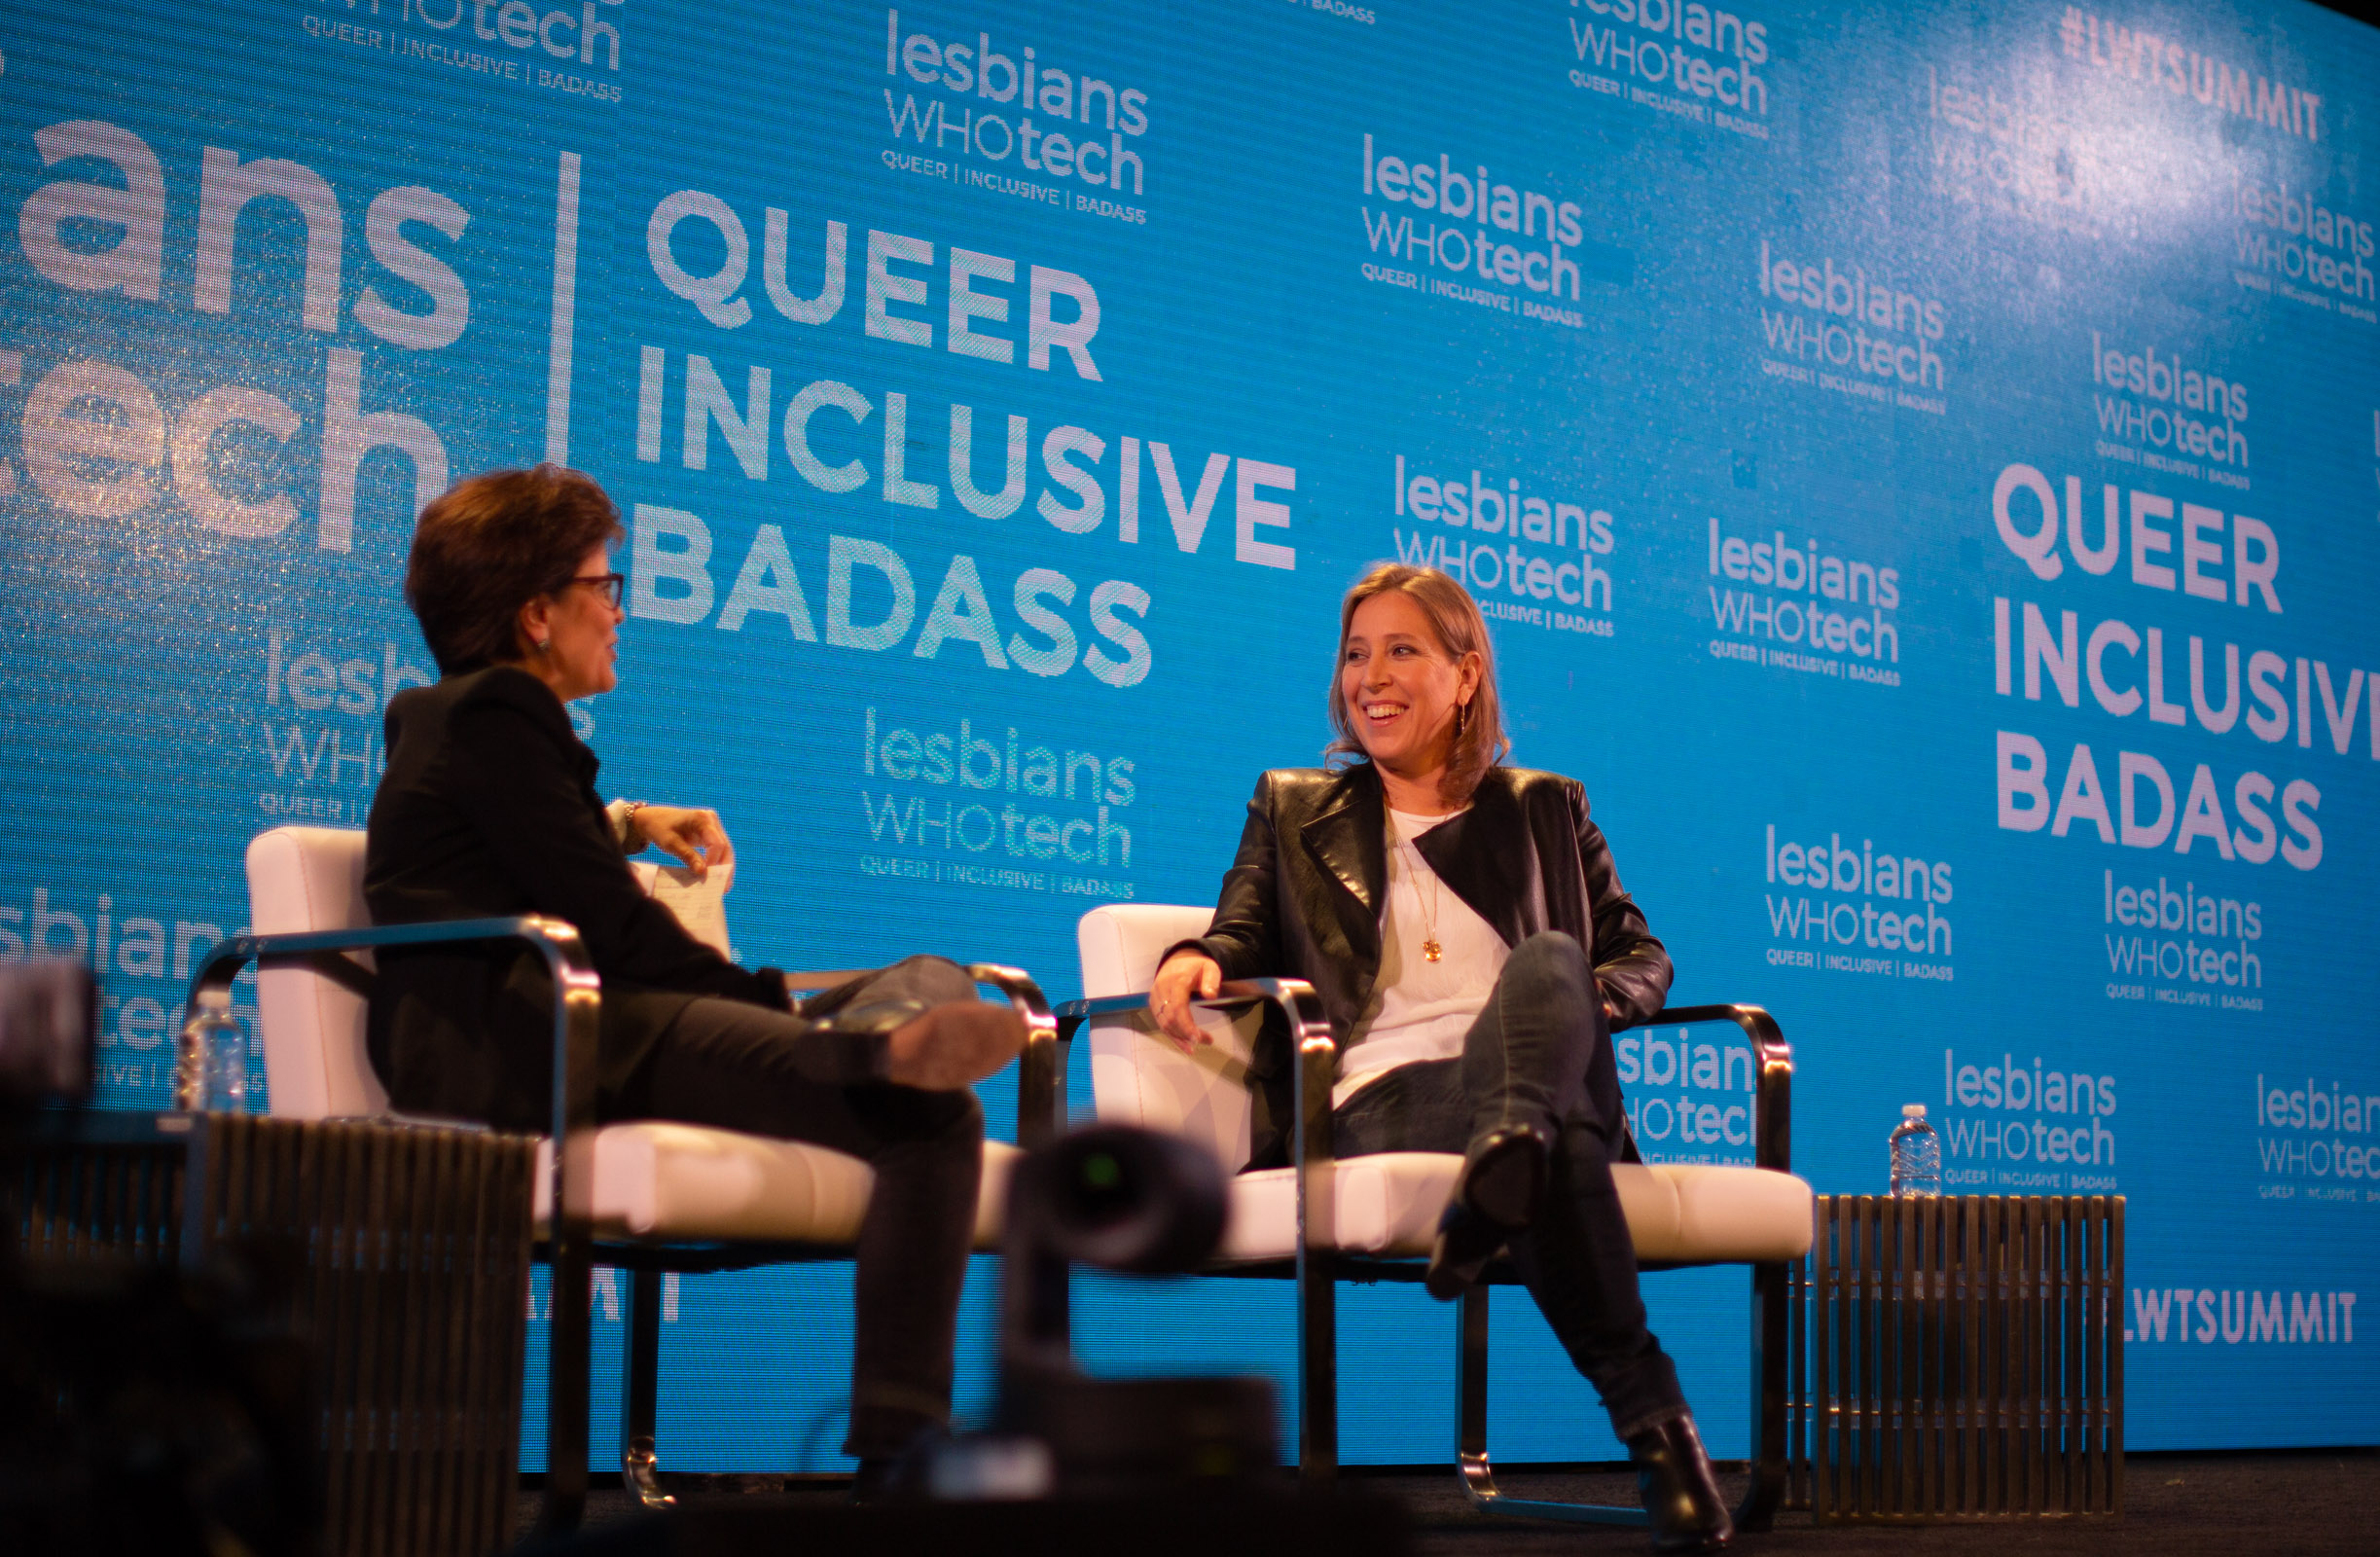 Kara Swisher, Recode co-founder and The New York Times columnist, and Susan Wojcicki, CEO of YouTube. Photo by Tumay Aslay